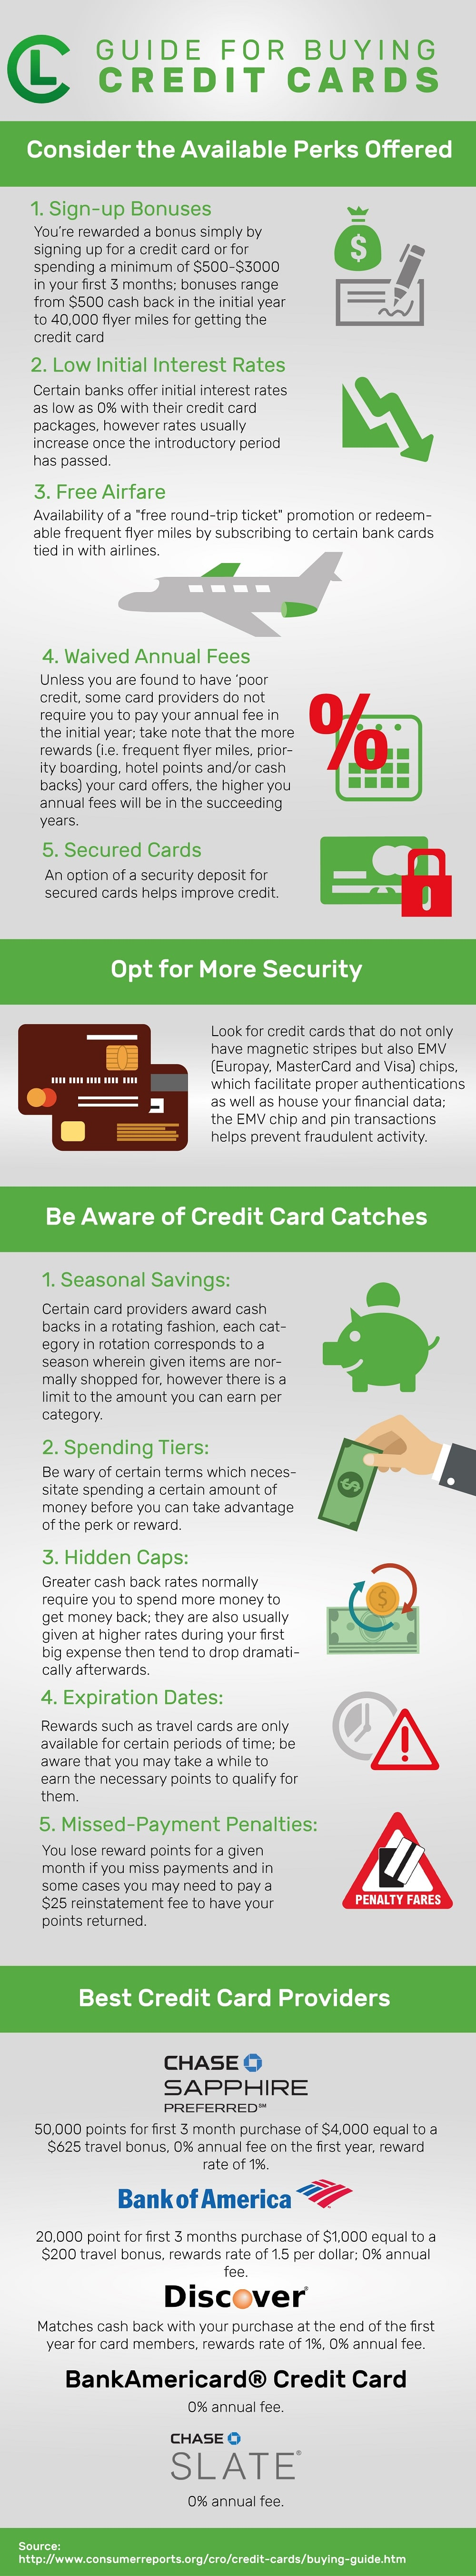 Guide For Choosing A Credit Card Infographic